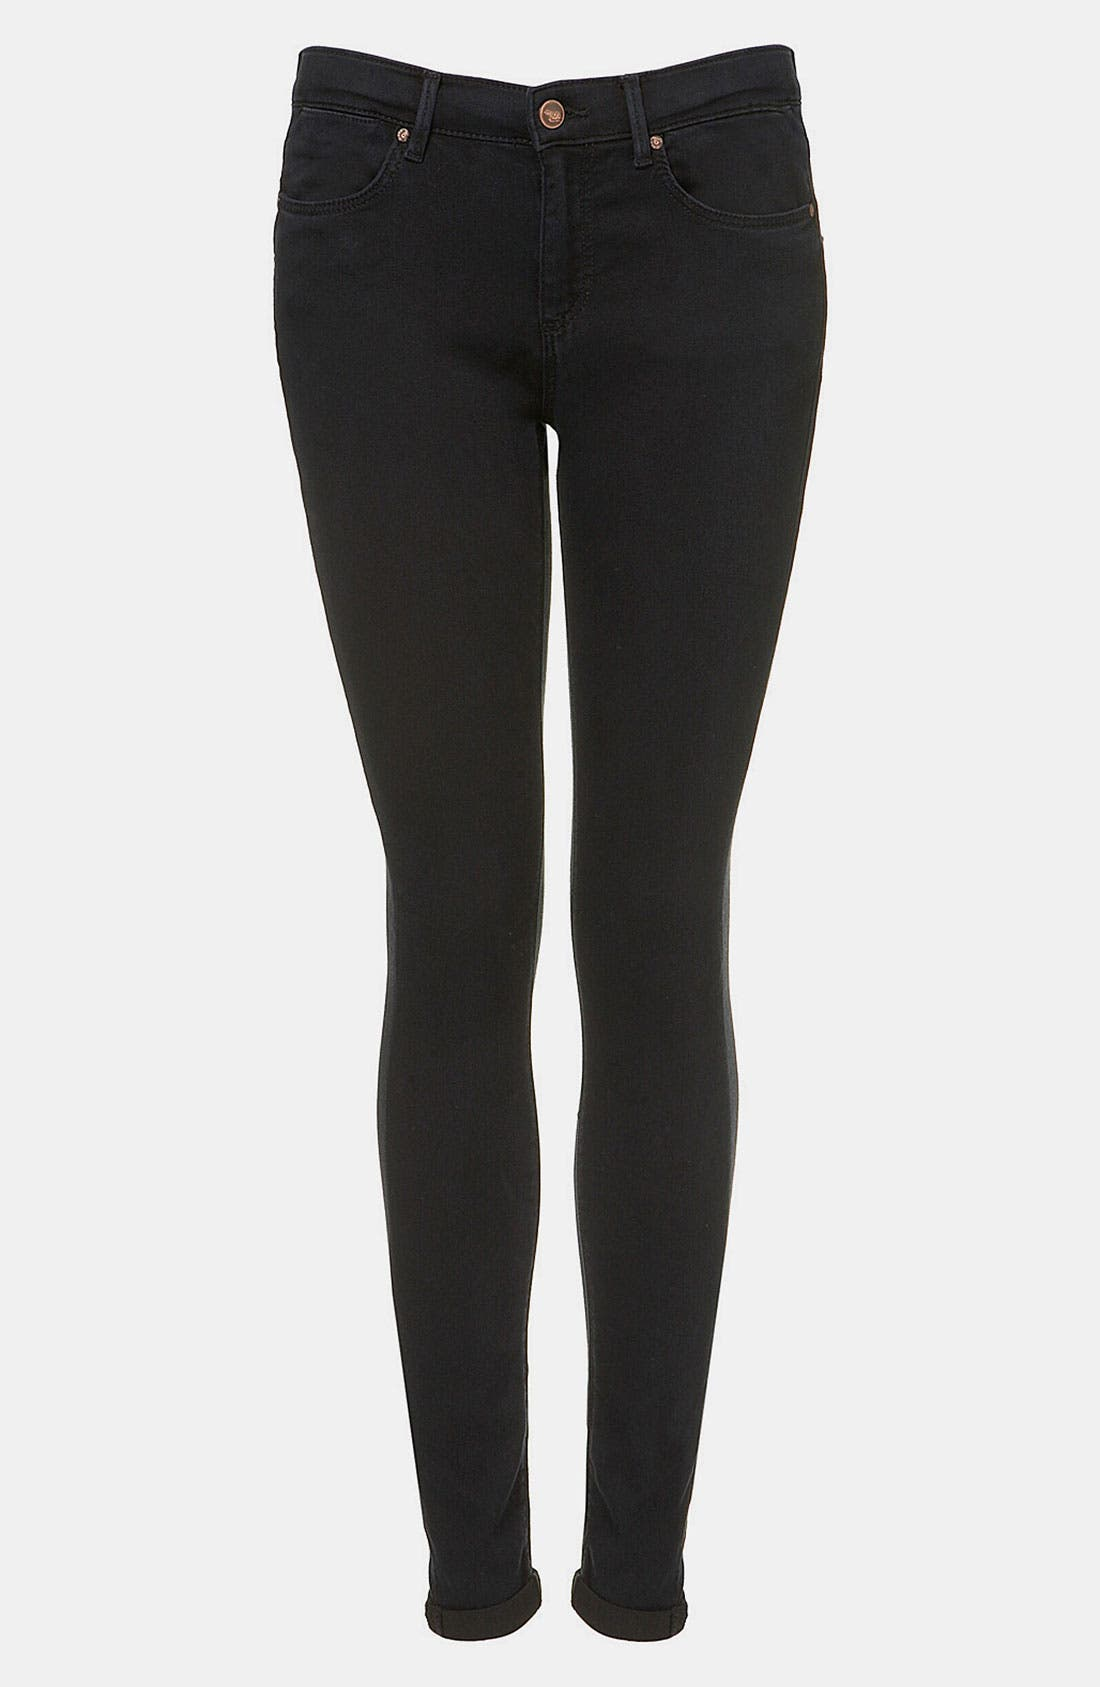 Alternate Image 1 Selected - Topshop Moto 'Leigh' Skinny Jeans (Blue Black)